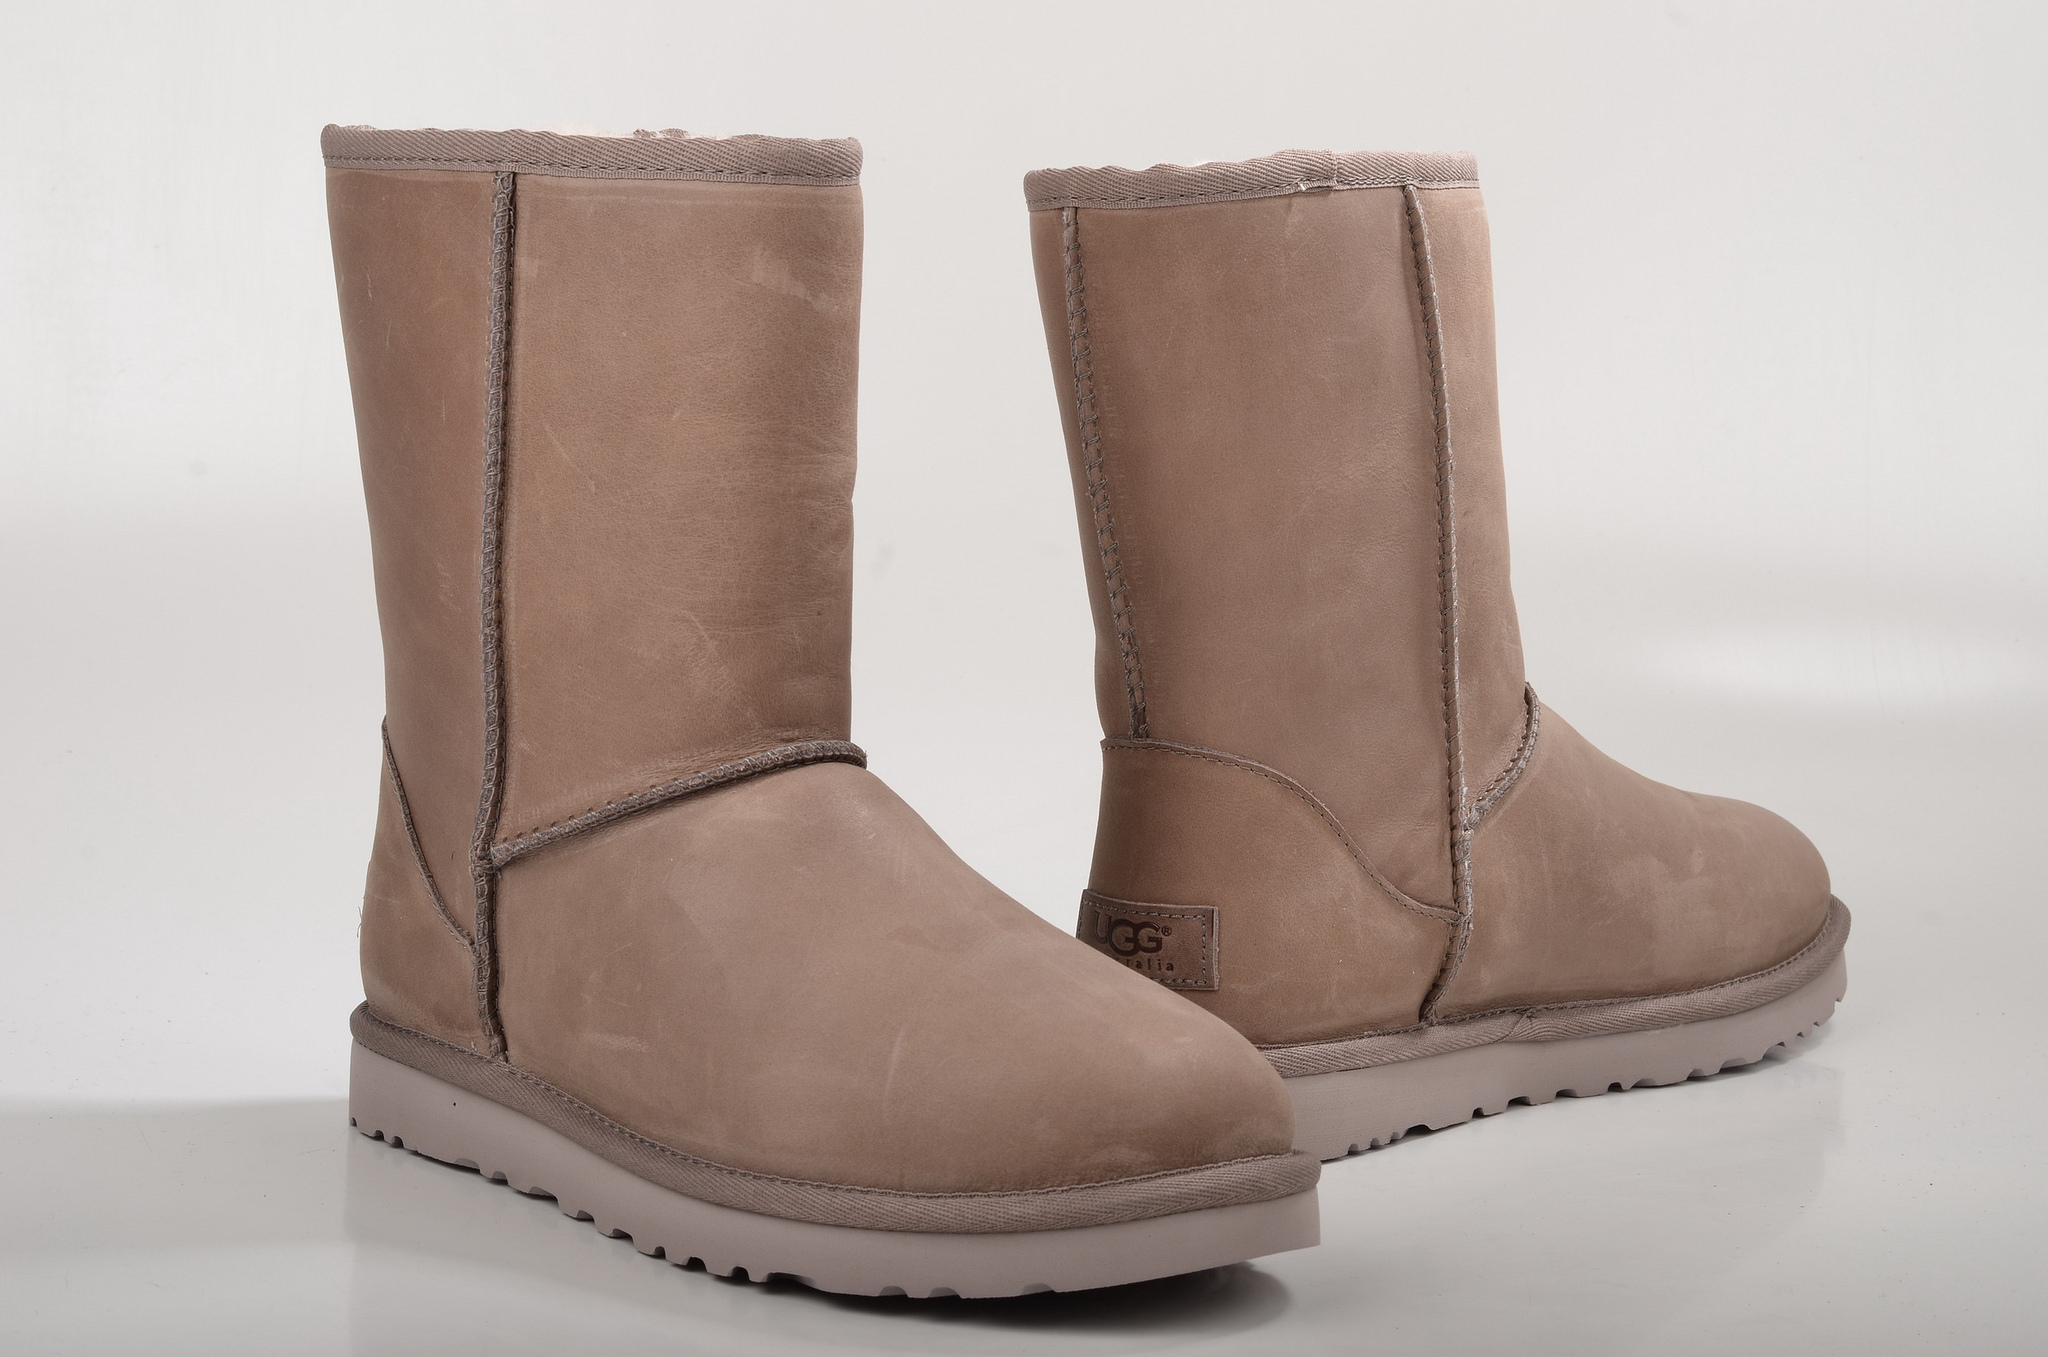 uggs in sydney airport